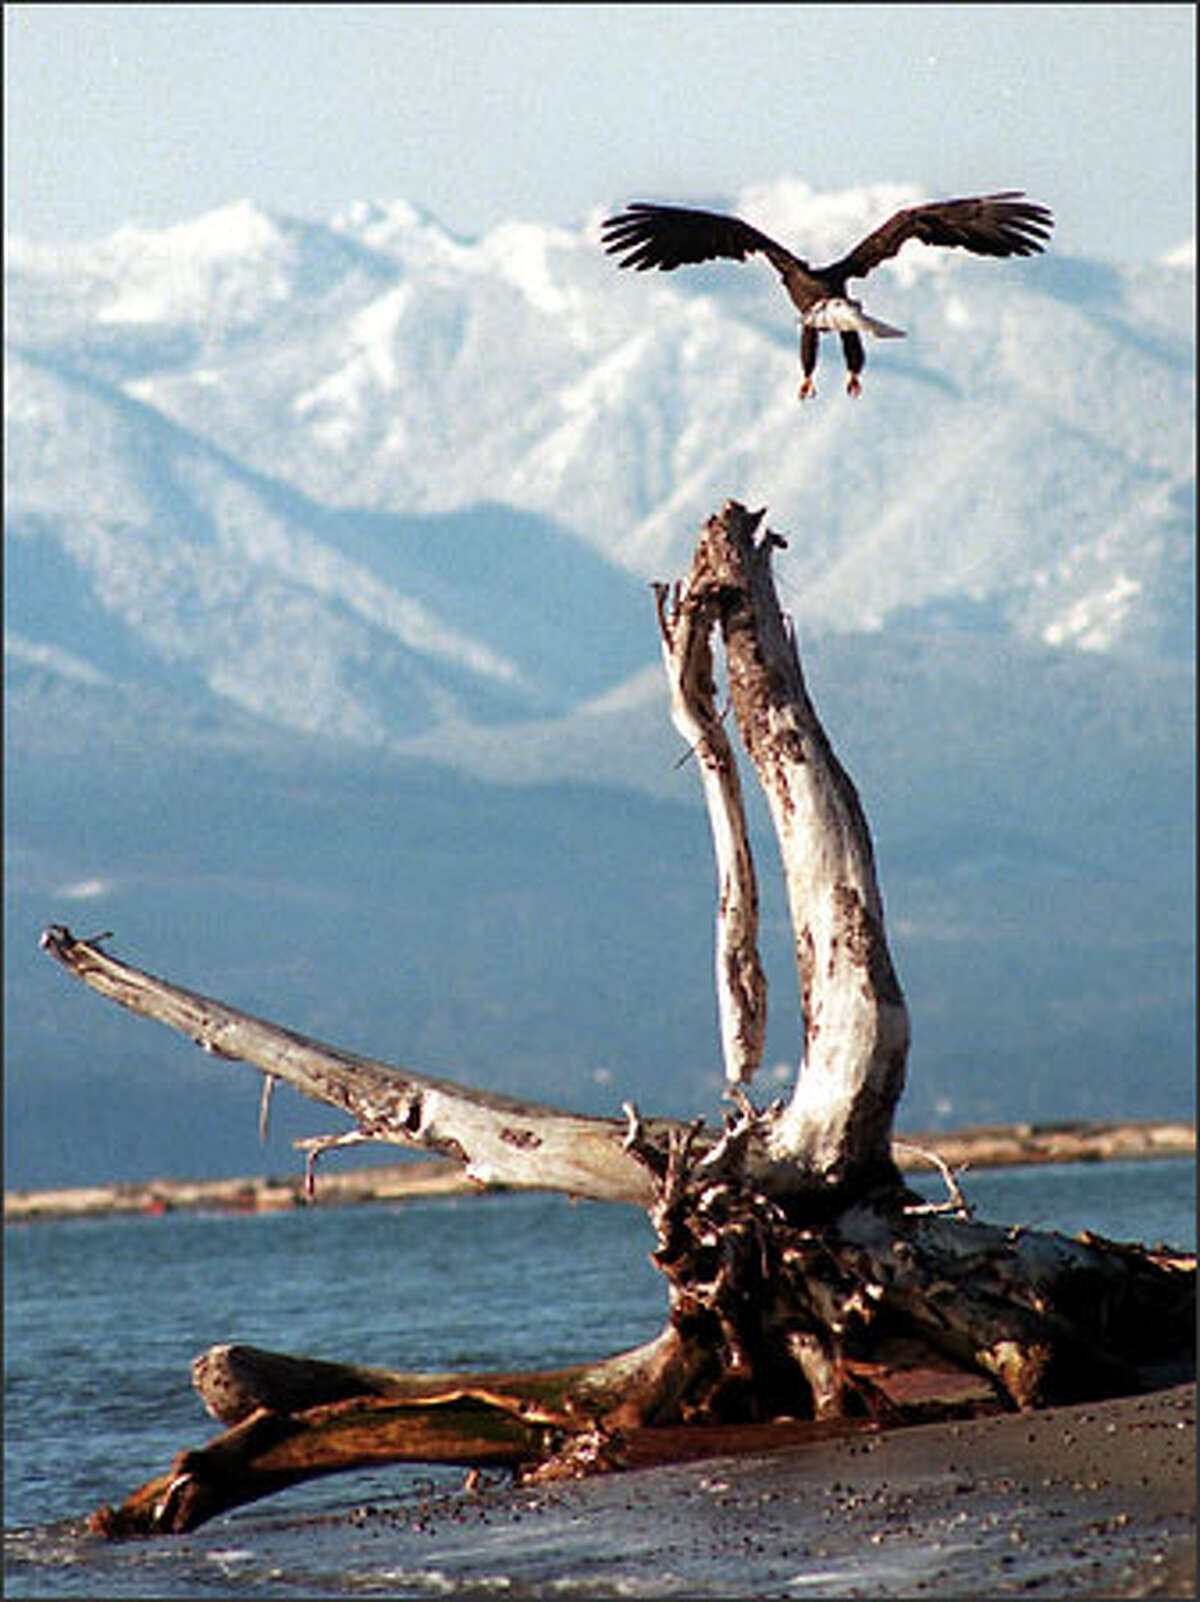 A bald eagle gets ready to land on a tree stump on the beach next to the Lighthouse at Dungeness Spit.